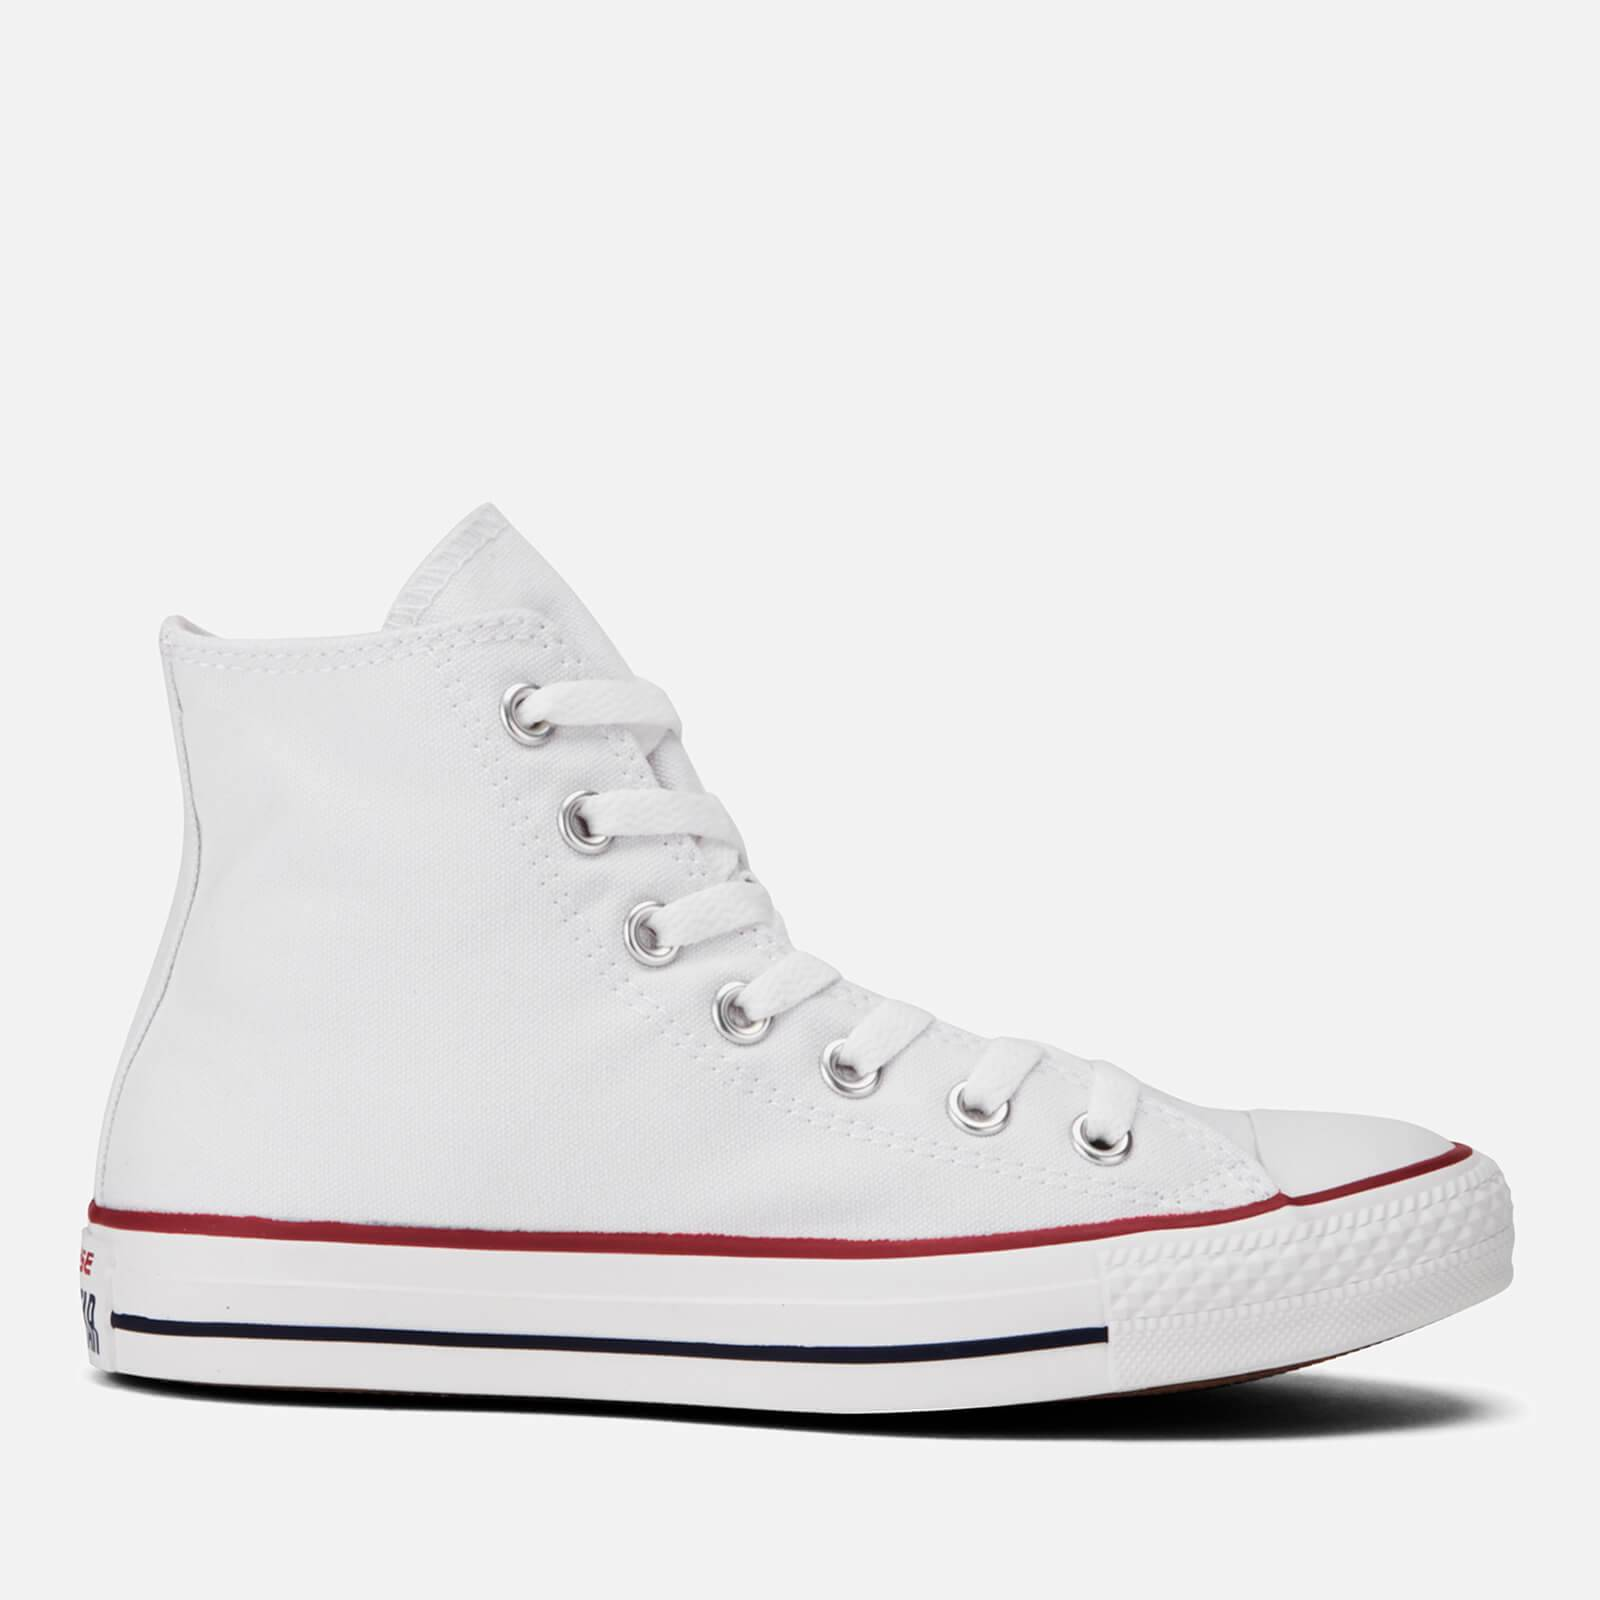 Converse Chuck Taylor All Star Canvas Hi-Top Trainers - Optical White - UK 4